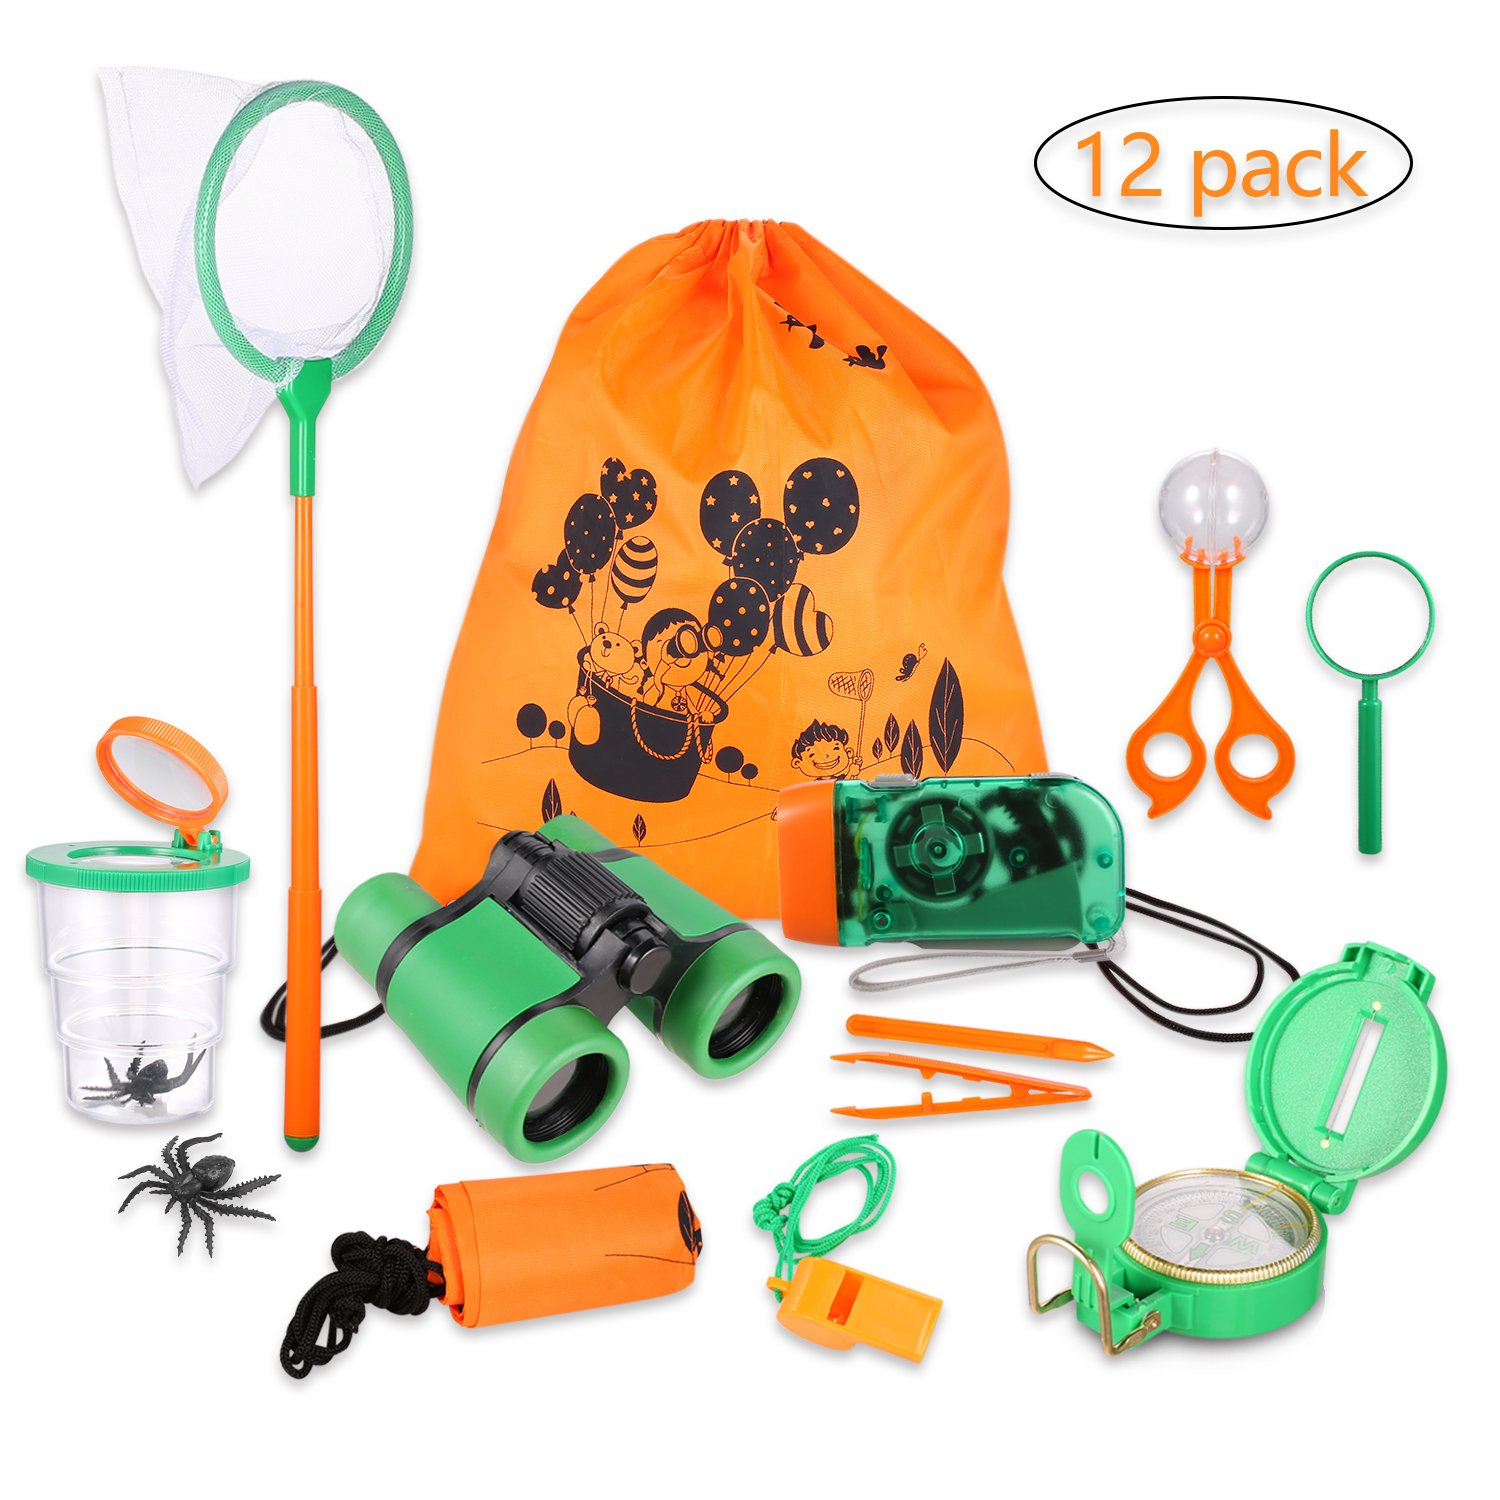 Outdoor Adventure Set for Kids - Explorer Kit, Educational Toys, Binoculars, Flashlight, Compass, Magnifying Glass, Butterfly Net, Tweezers, Bug Viewer, Whistle, Gift Set For Camping Hiking Backyard by Harlerbo (Image #1)